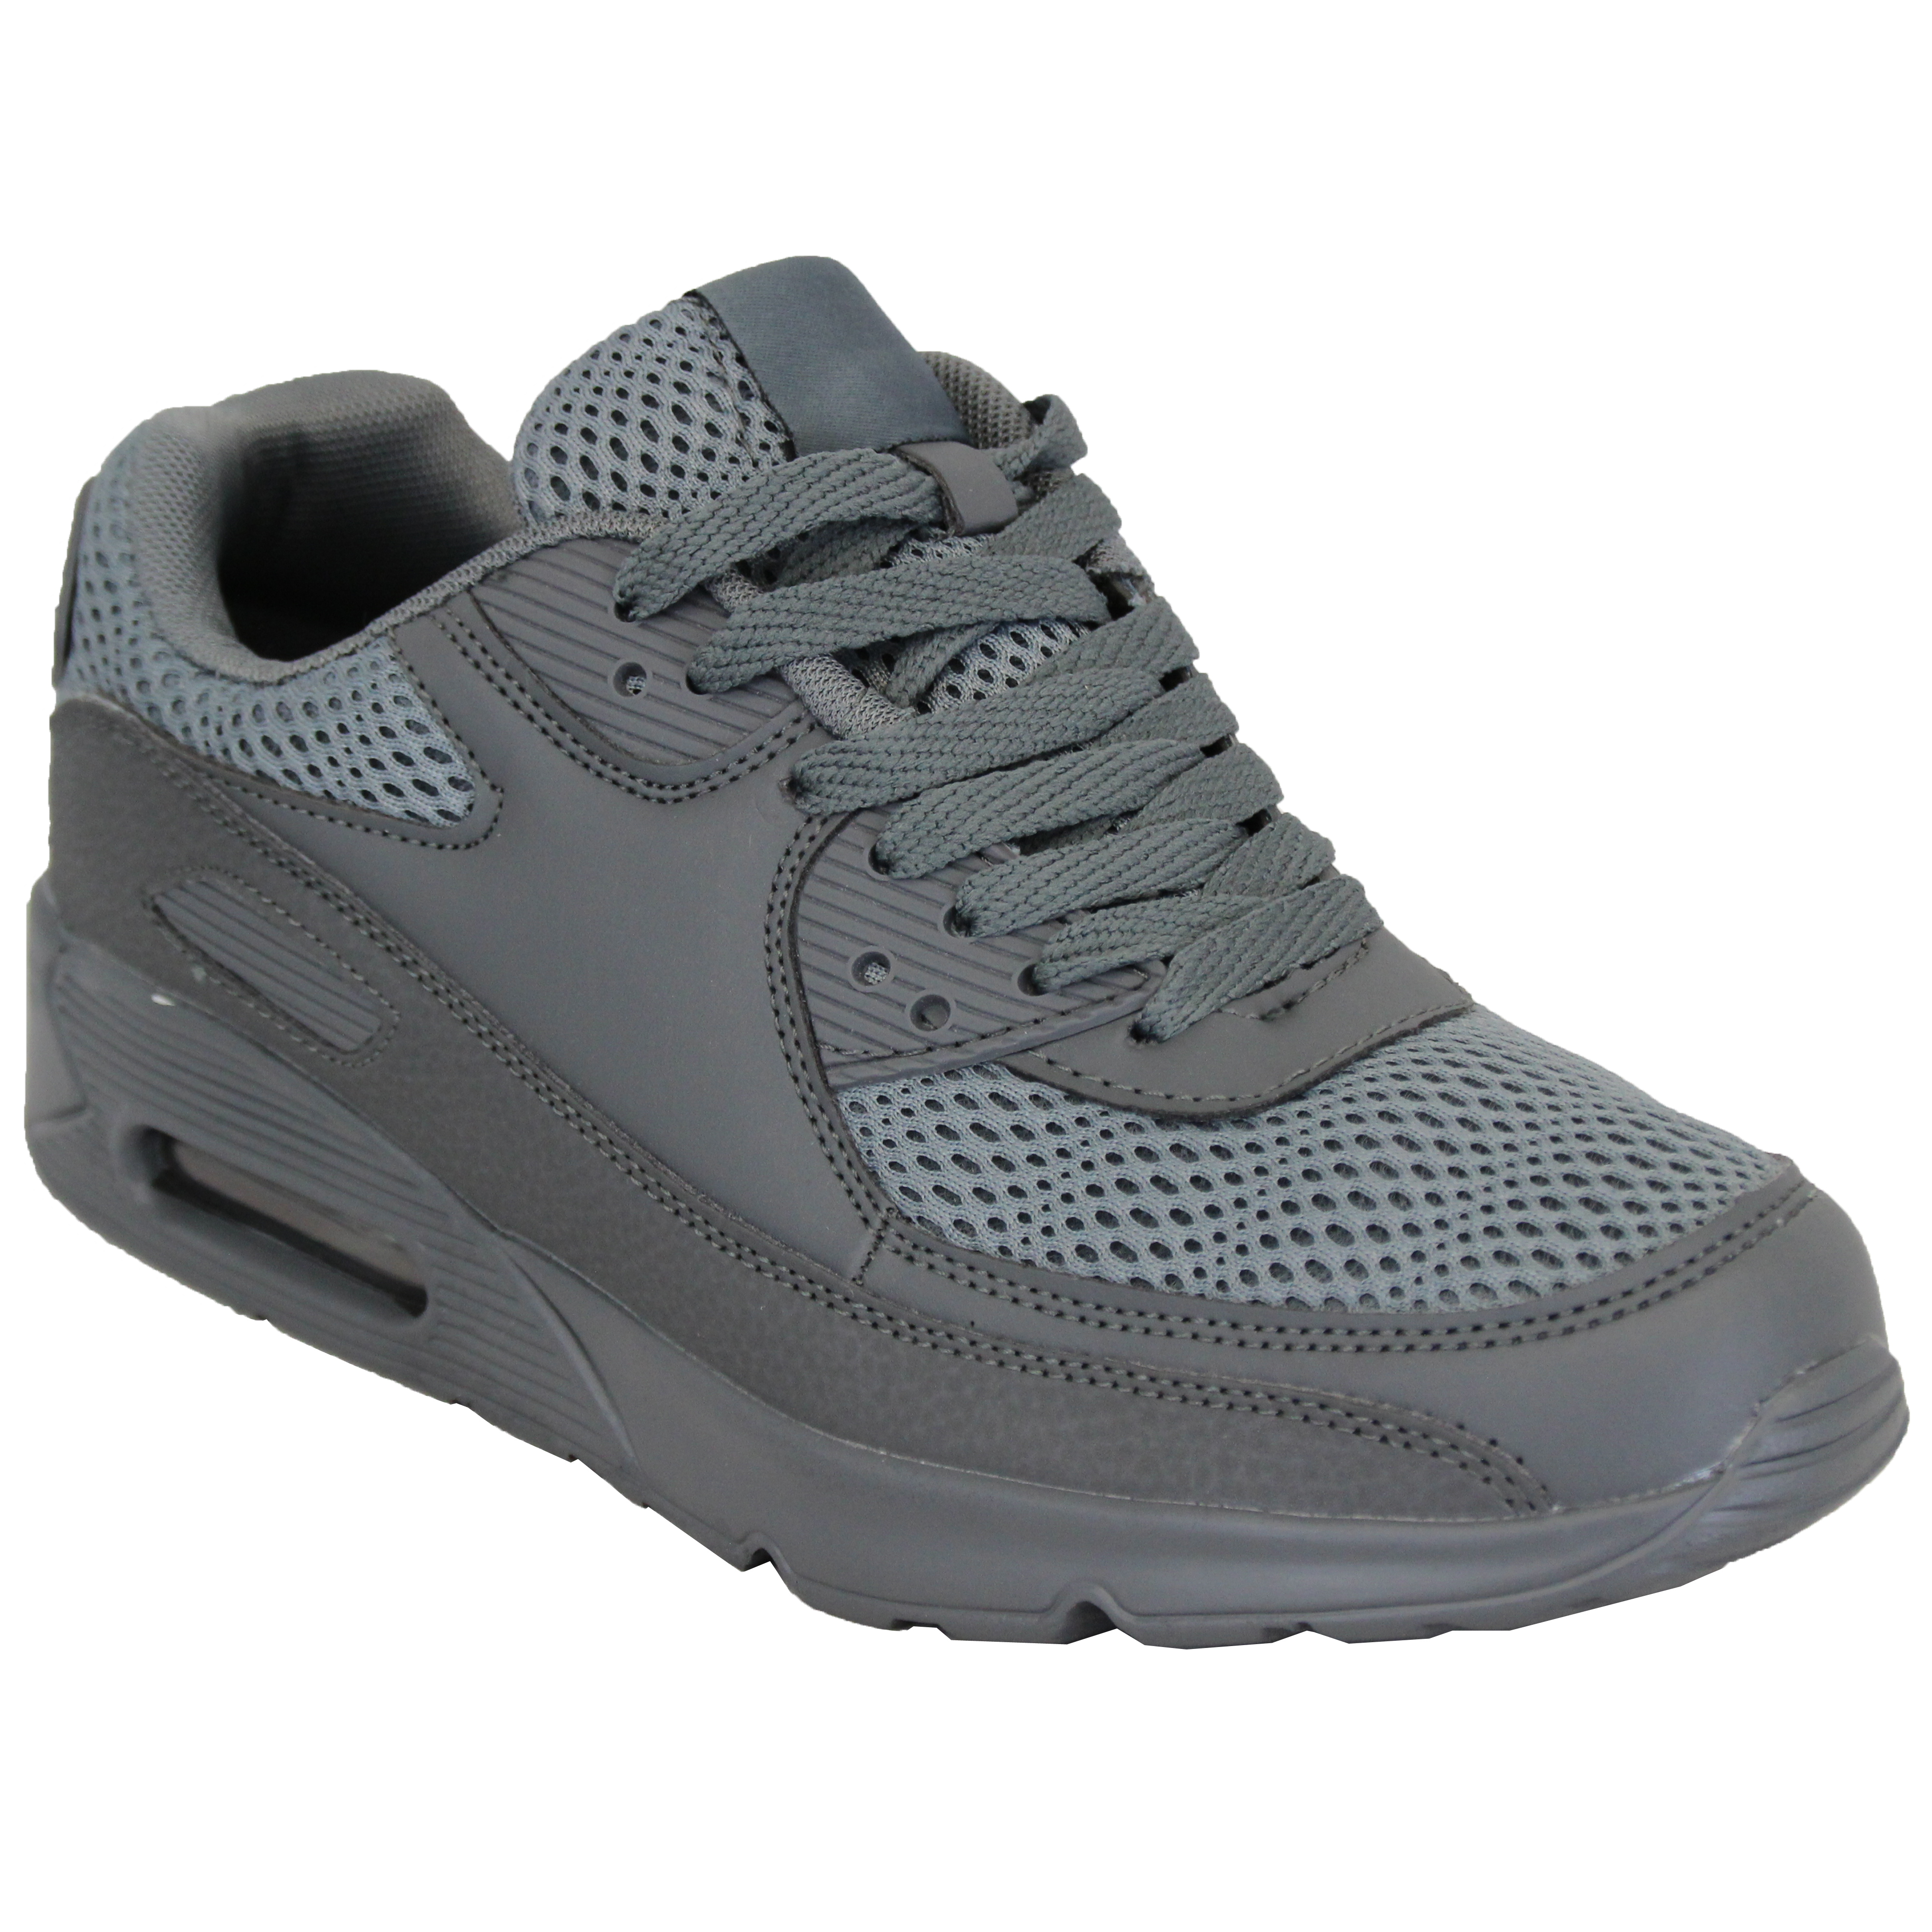 Mens-Bubble-Trainers-Lace-Up-Running-Shoes-Mesh-Jogging-Sports-Gym-Casual-New thumbnail 10